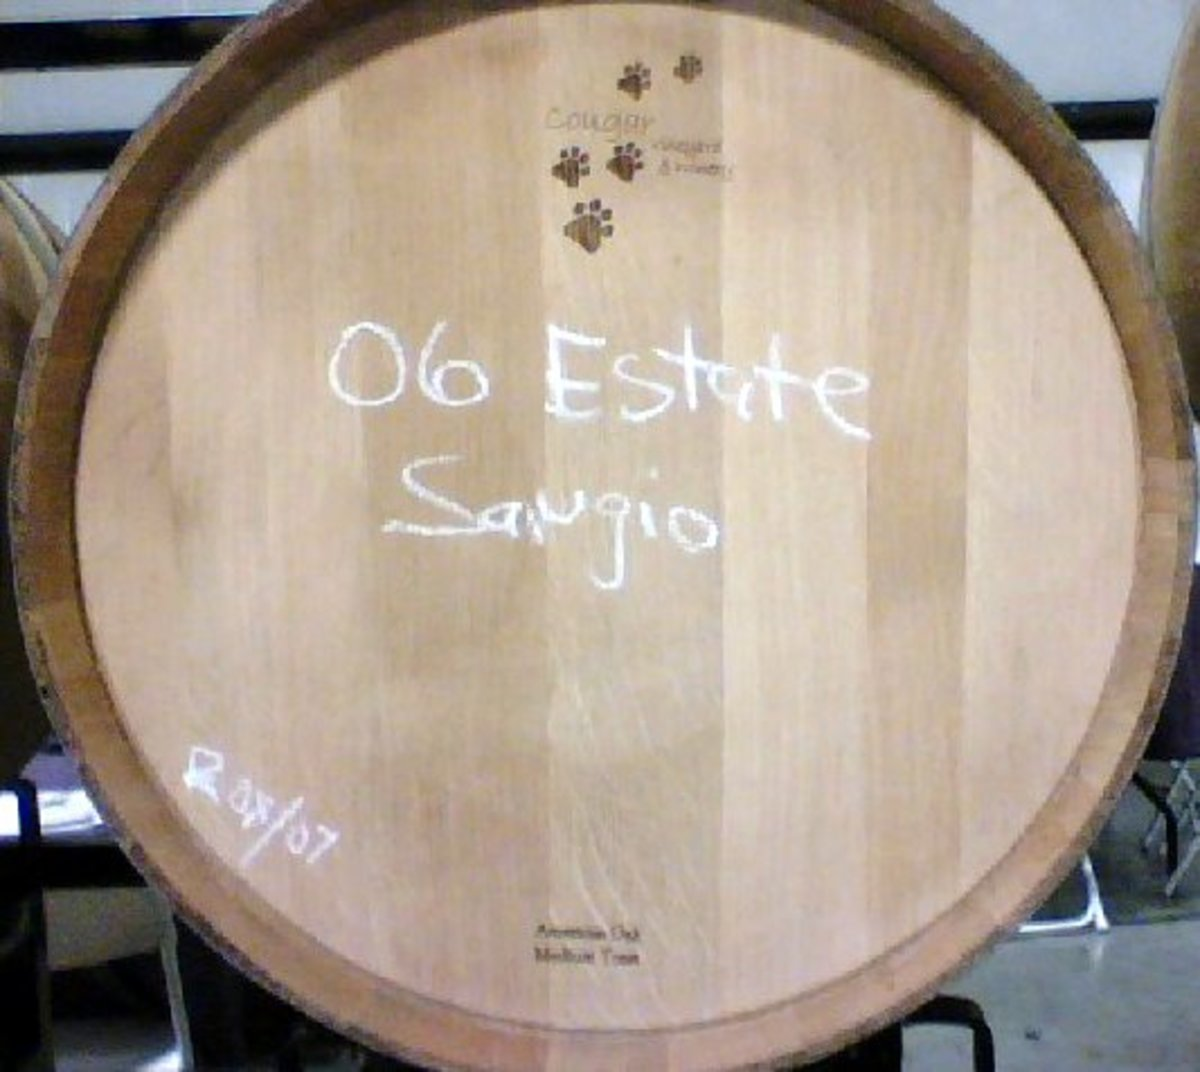 Barrel of Sangiovese at Cougar Winery